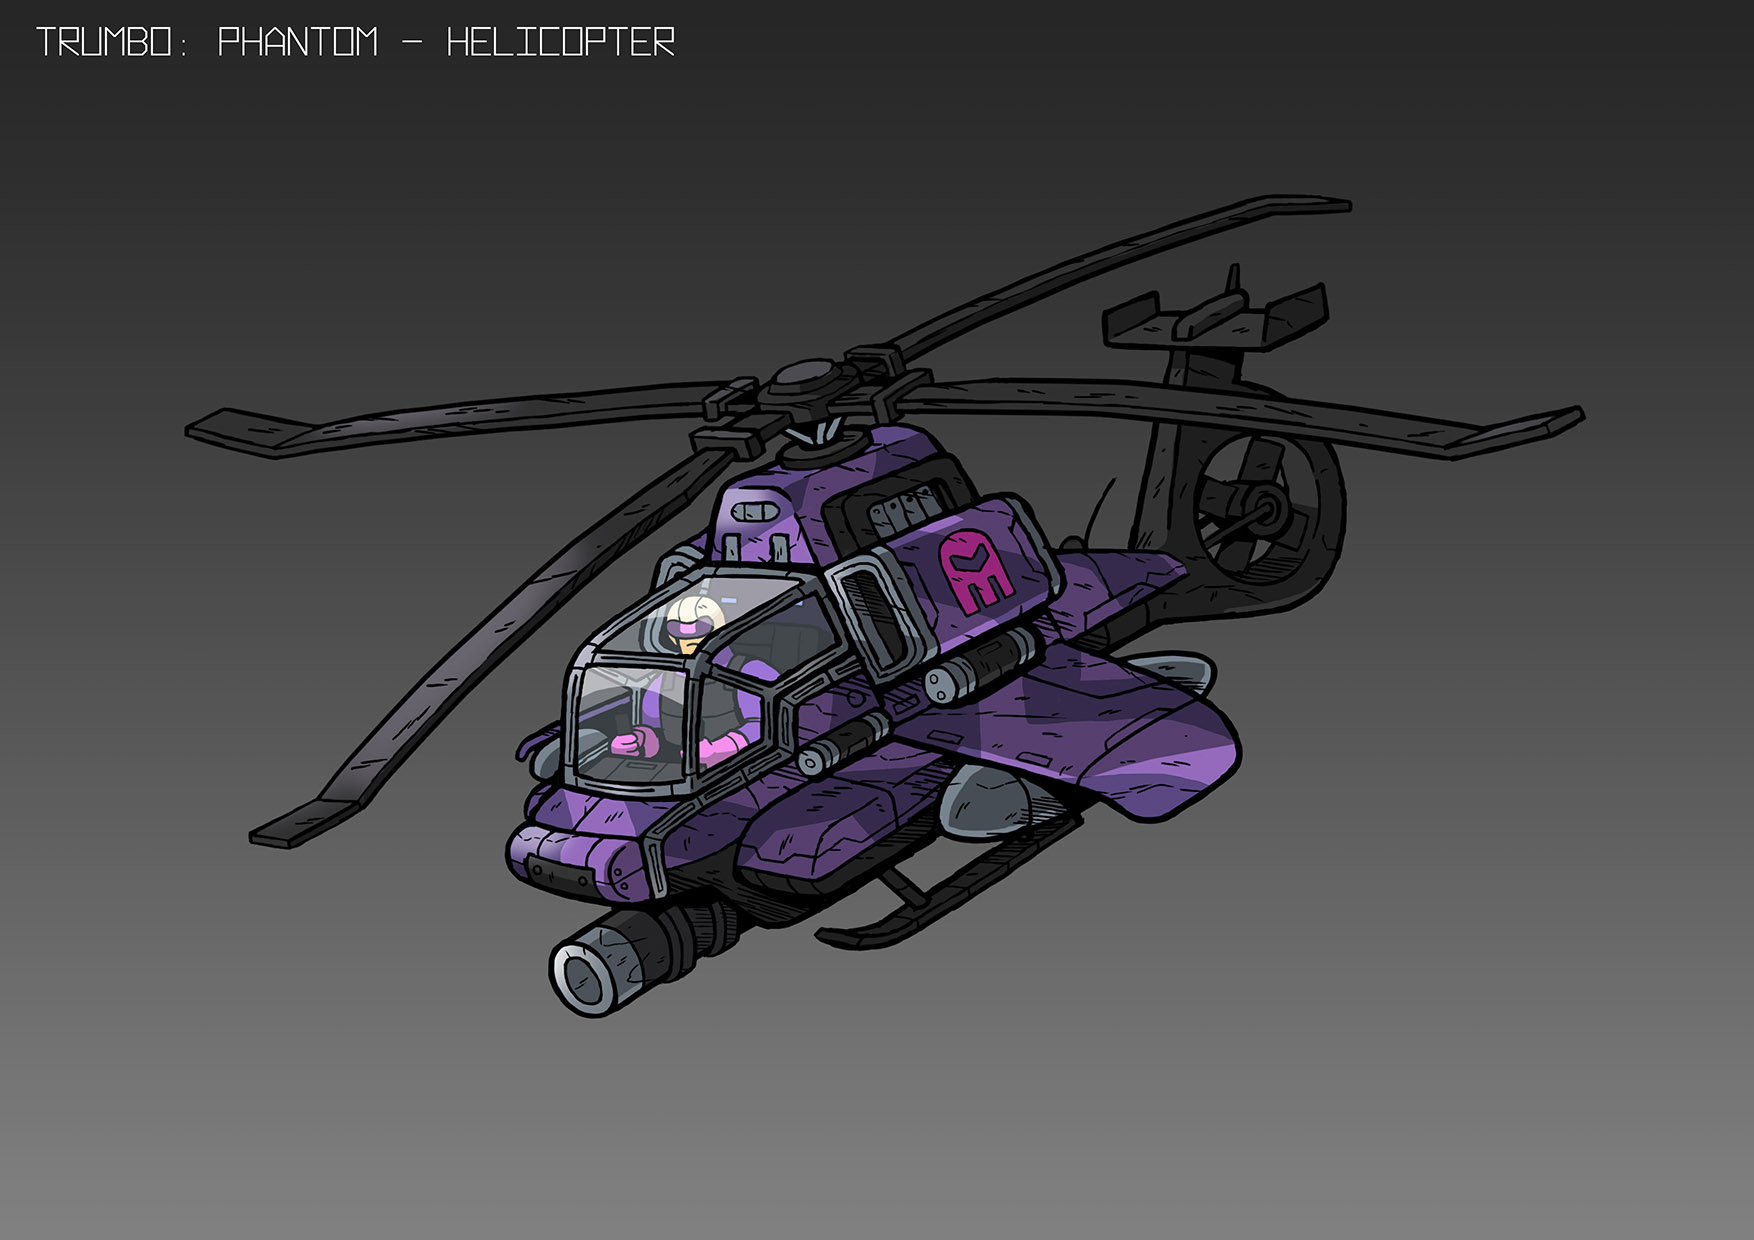 m_helicopter.jpg